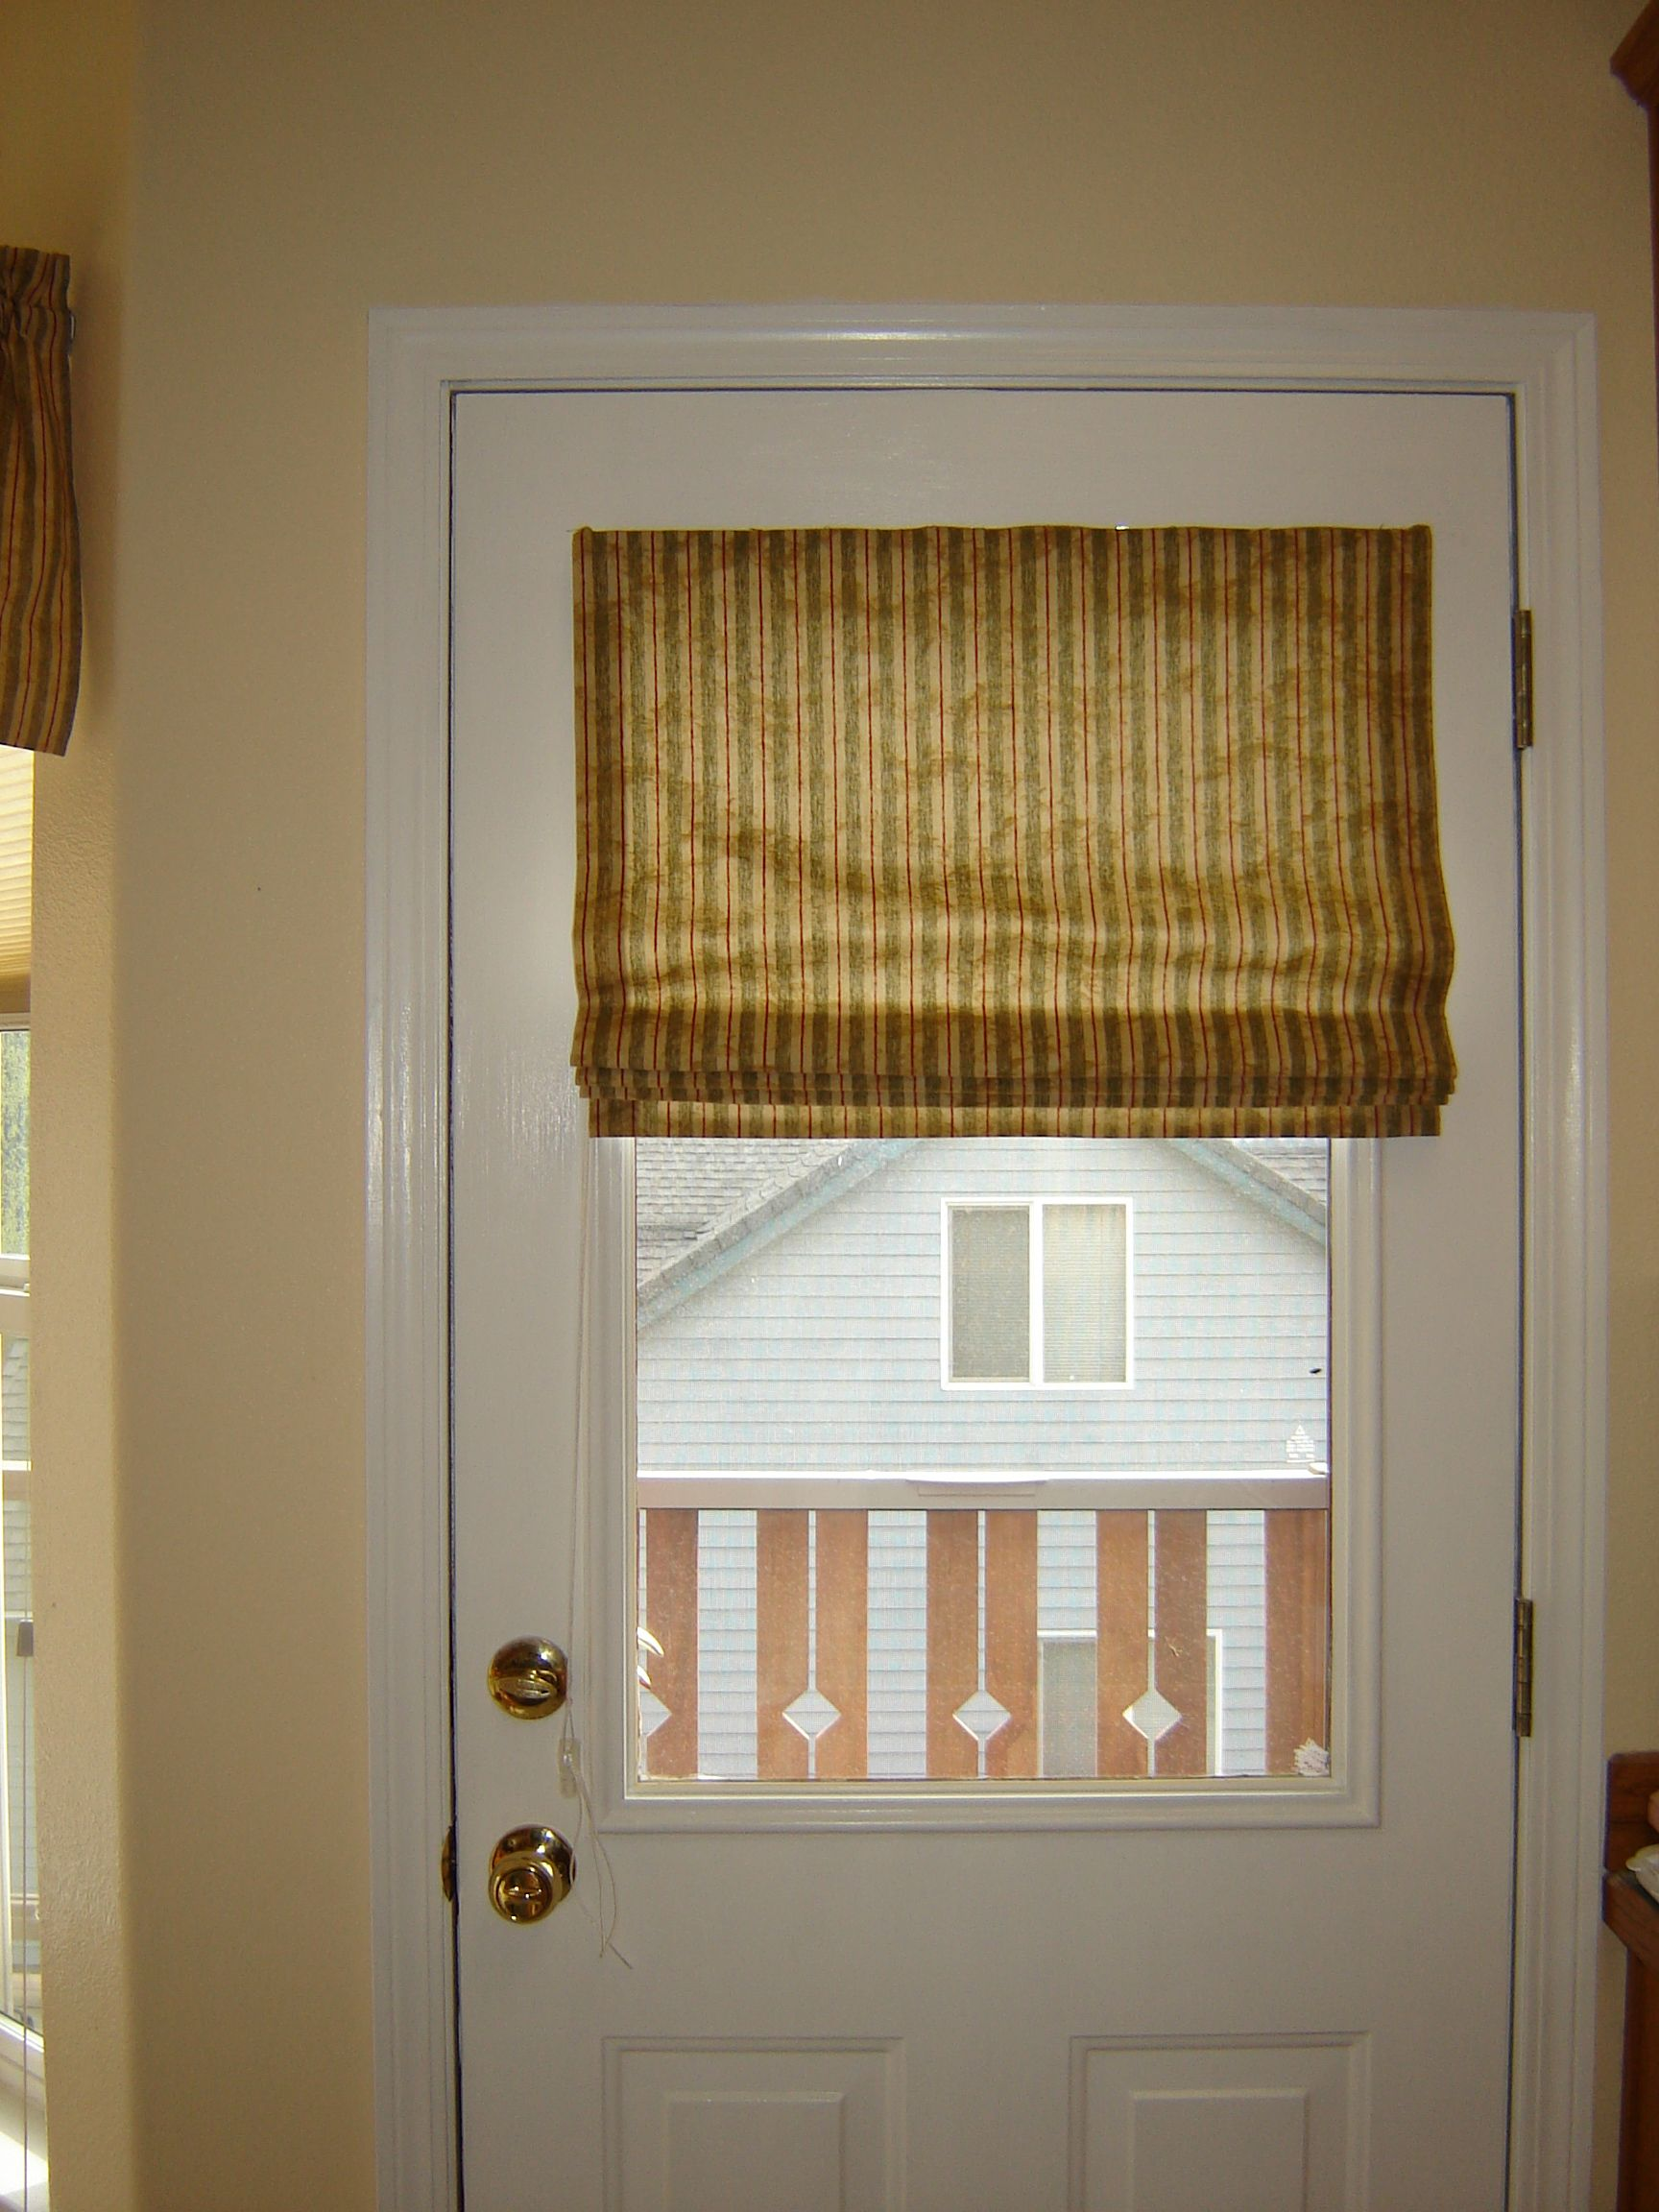 Wooden Door Blinds Roman Shade For Metal Door Glued Magnets To The Back Of The